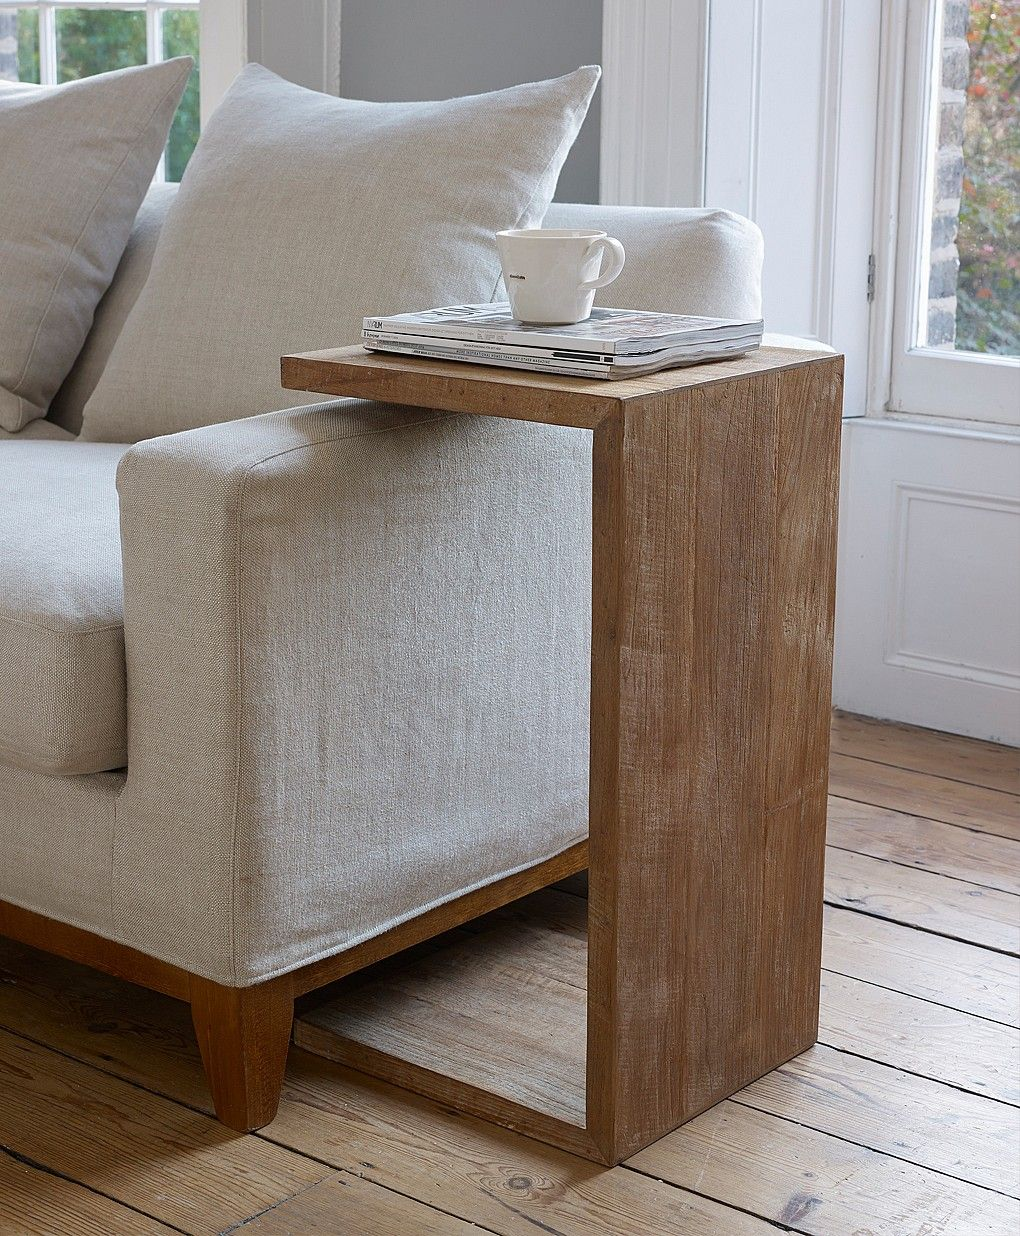 Wooden Side Table Designs Pin By Colleen Champagne On Home Ideas In 2019 Diy Sofa Table